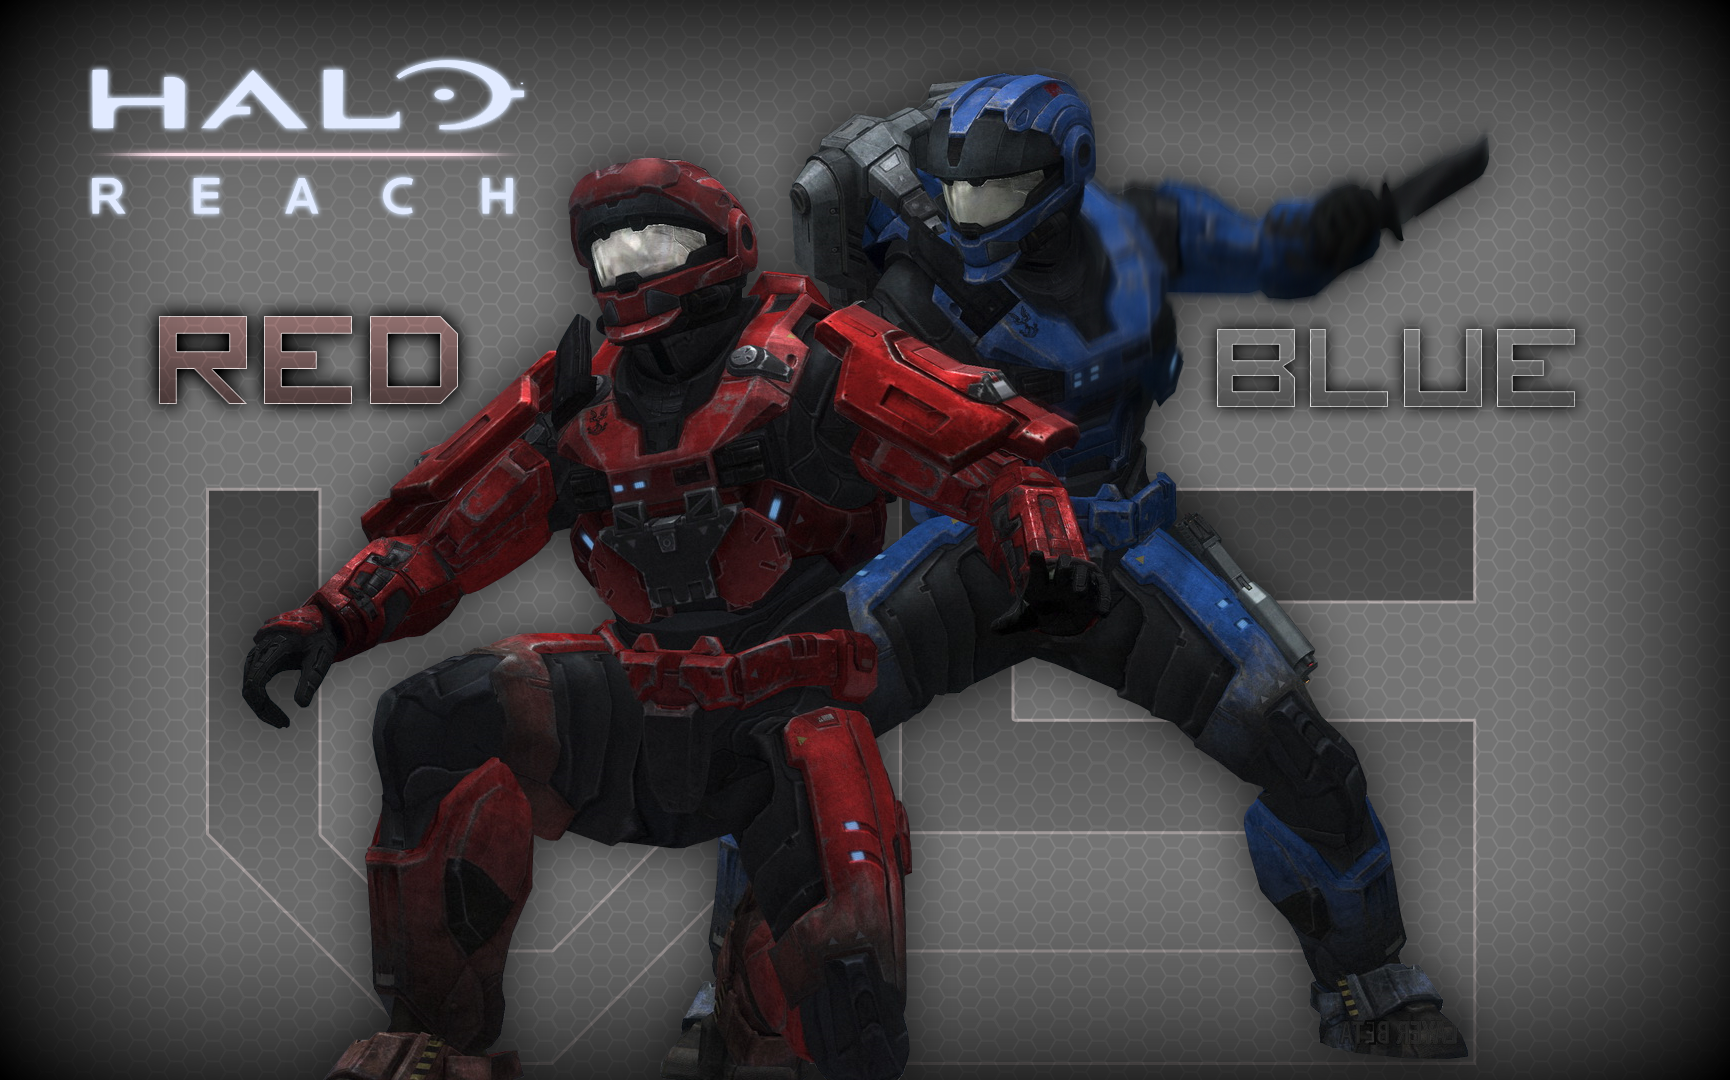 Halo red vs blue porn sex movies